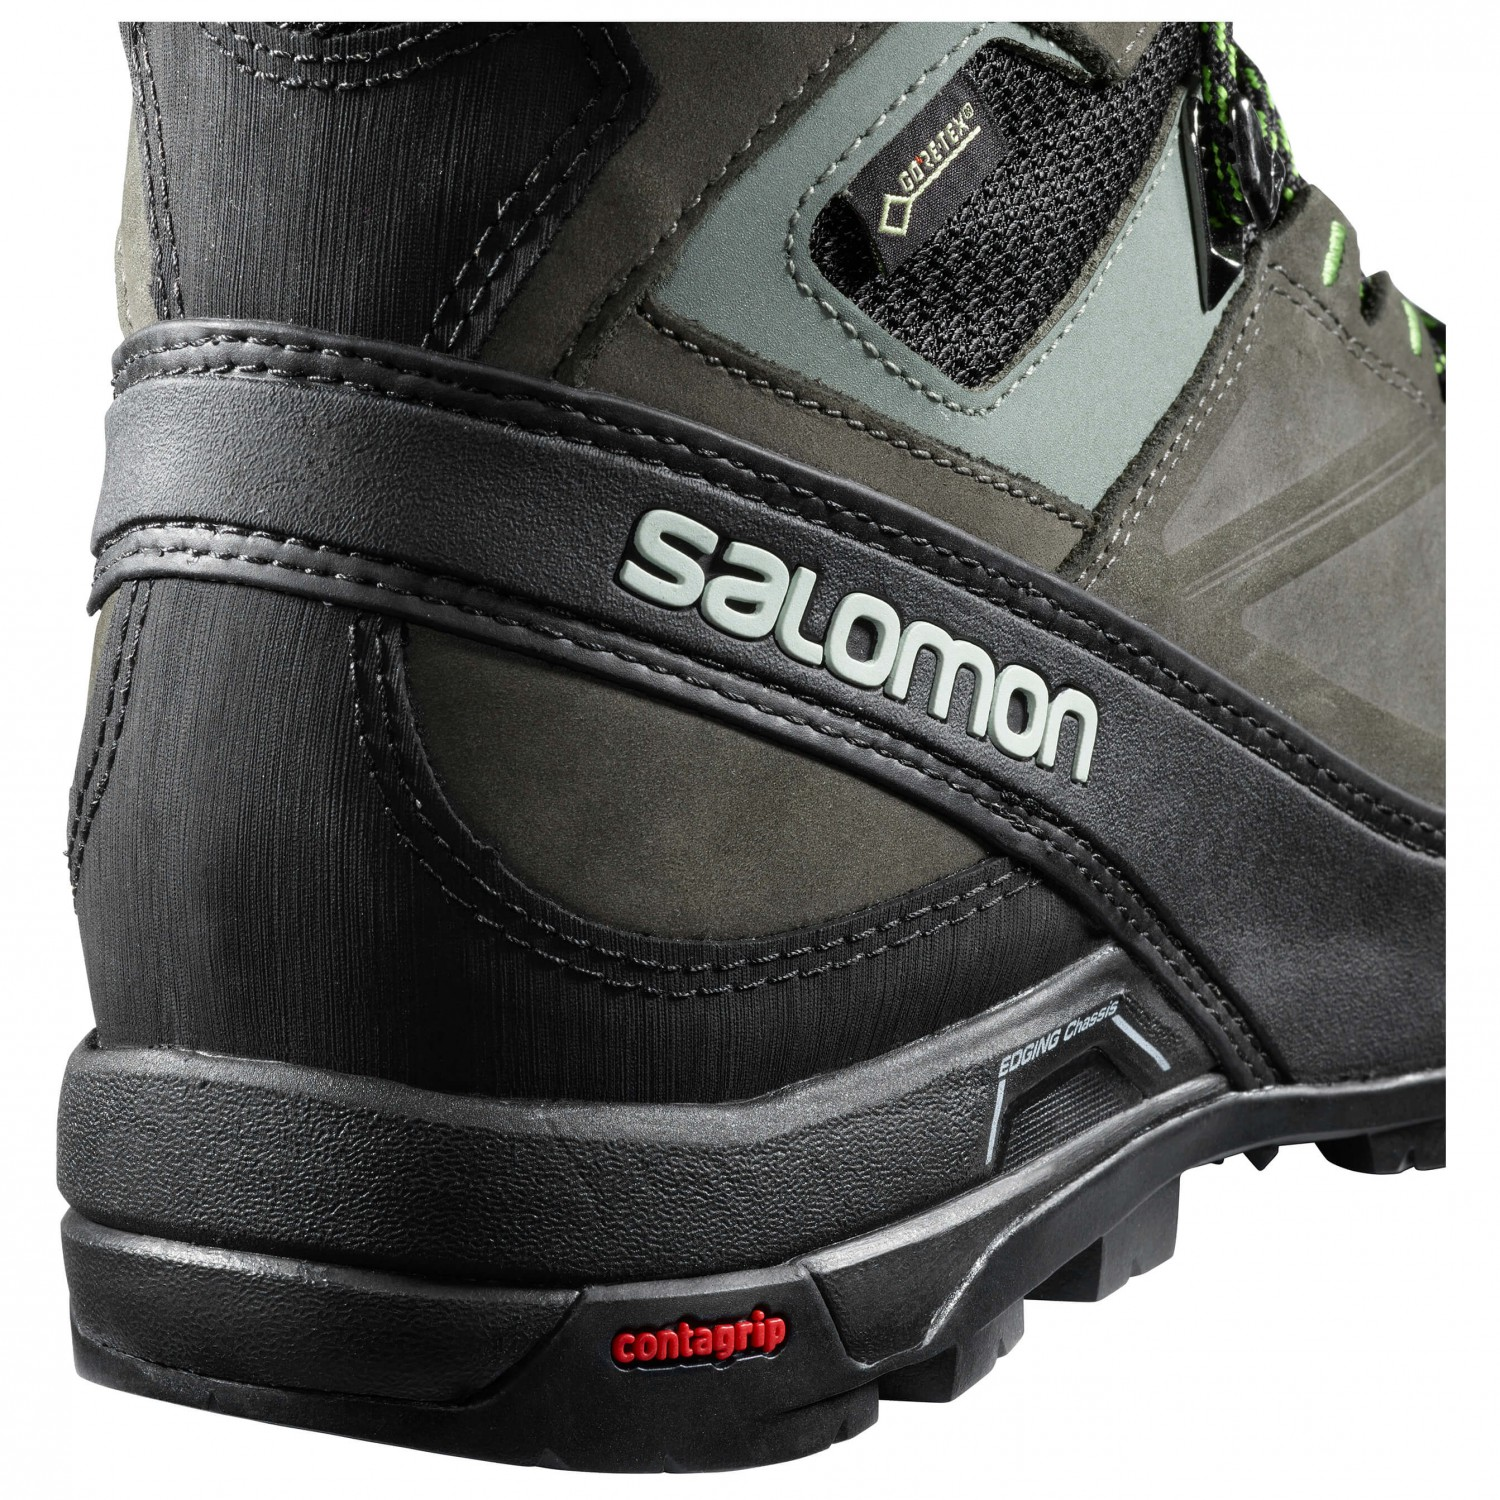 Chaussures alpinisme Salomon Super Moutain9 en 41 Chaussures